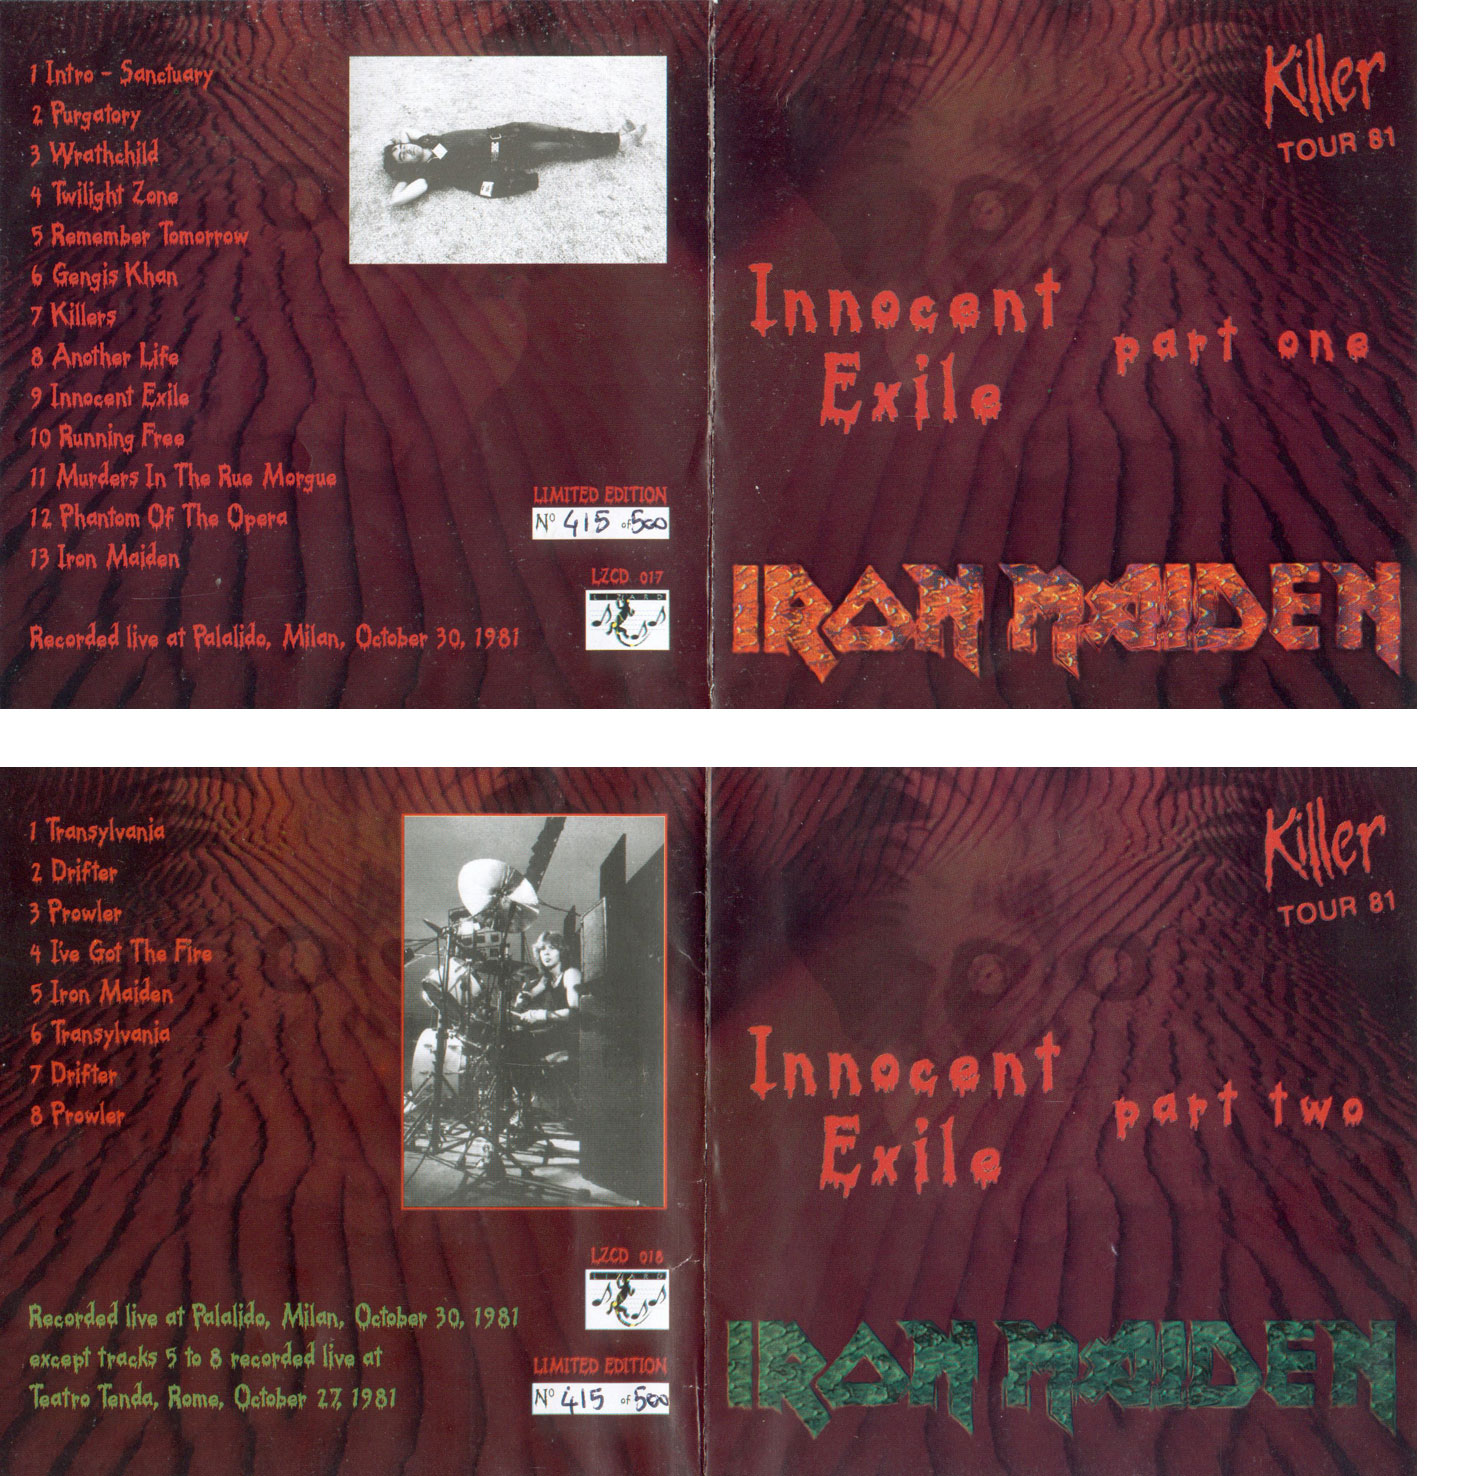 Iron Maiden Bootlegs - Innocent Exile